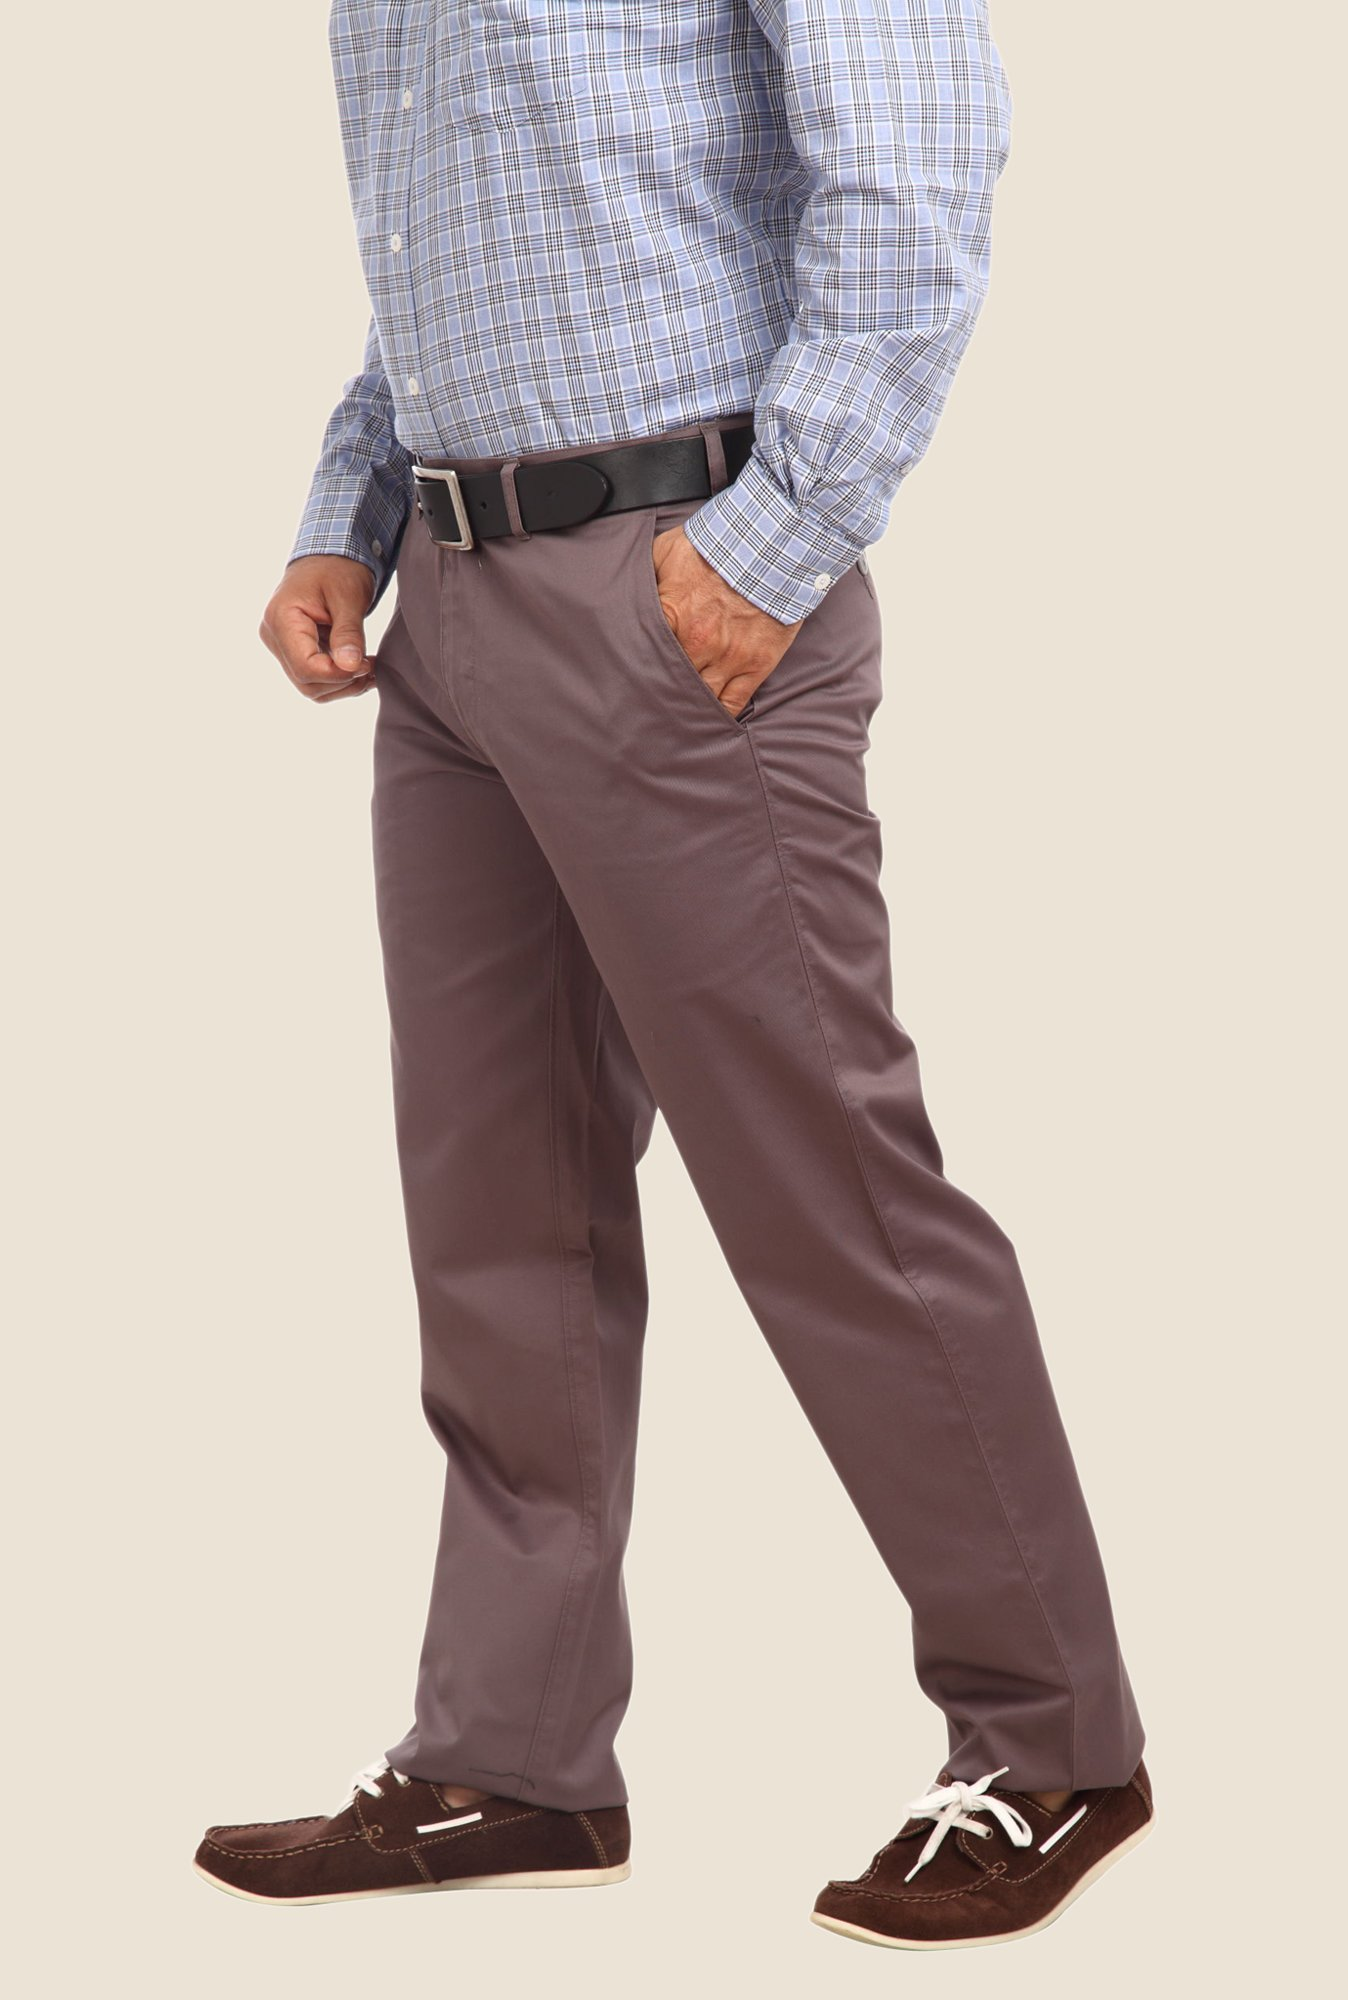 ColorPlus Grey Solid Trouser